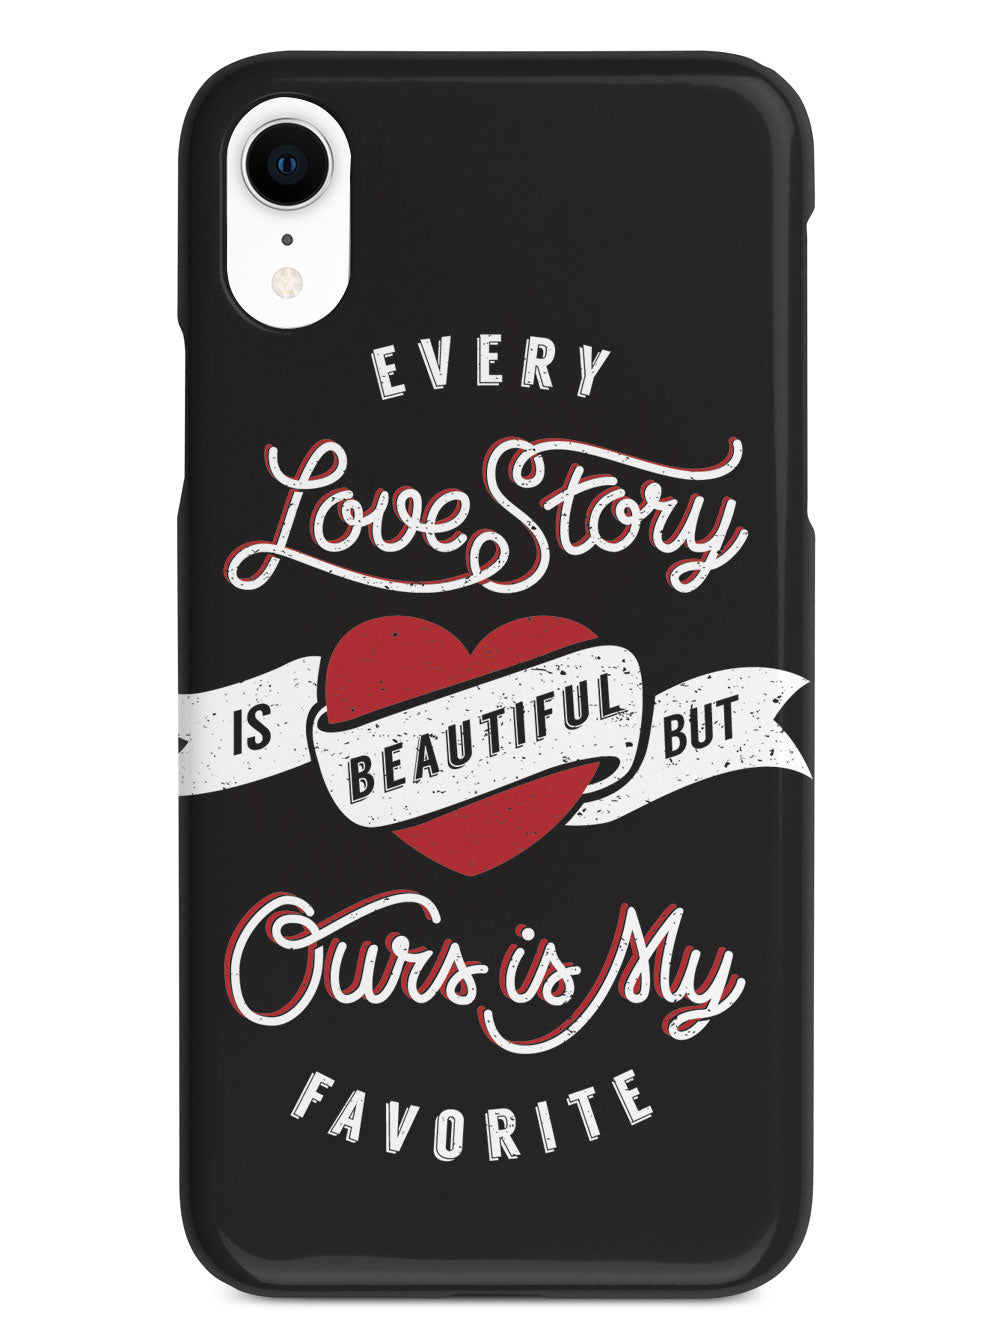 Our Love Story Case